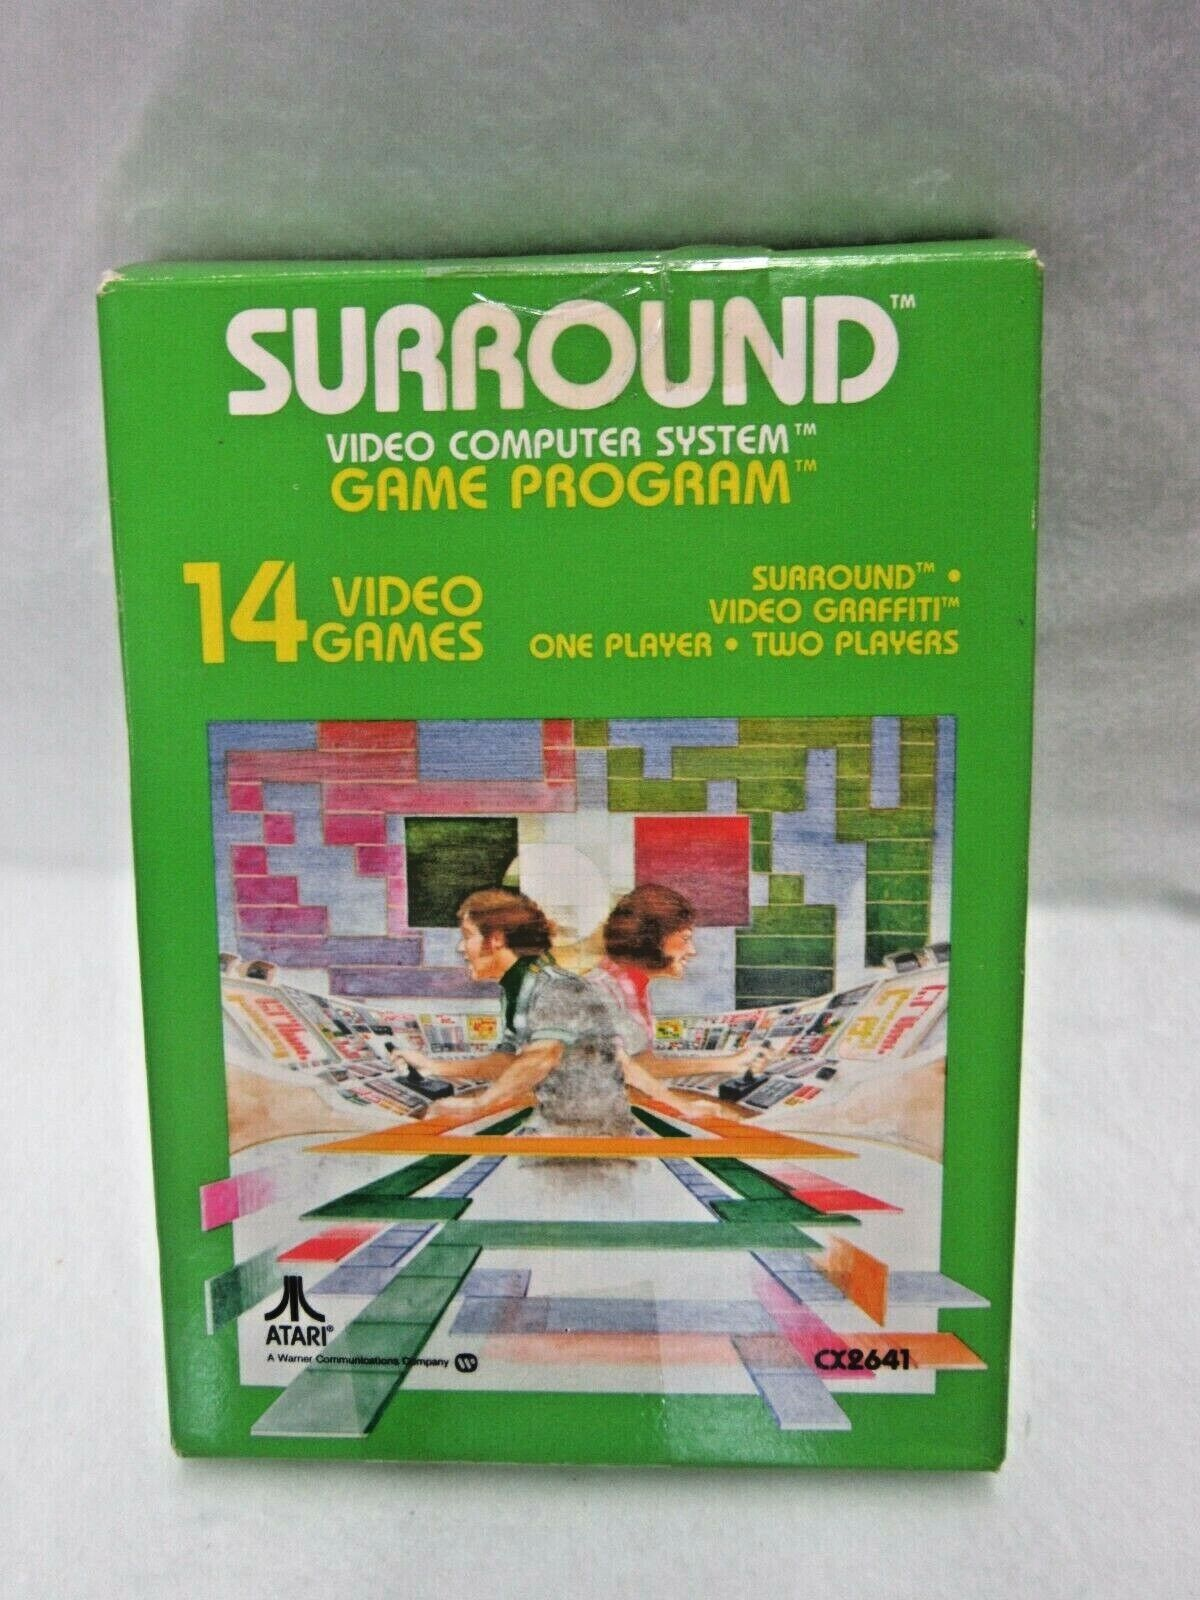 Computer Games - Surround Video Computer System Game Program 14 Video Games For Atari CIB